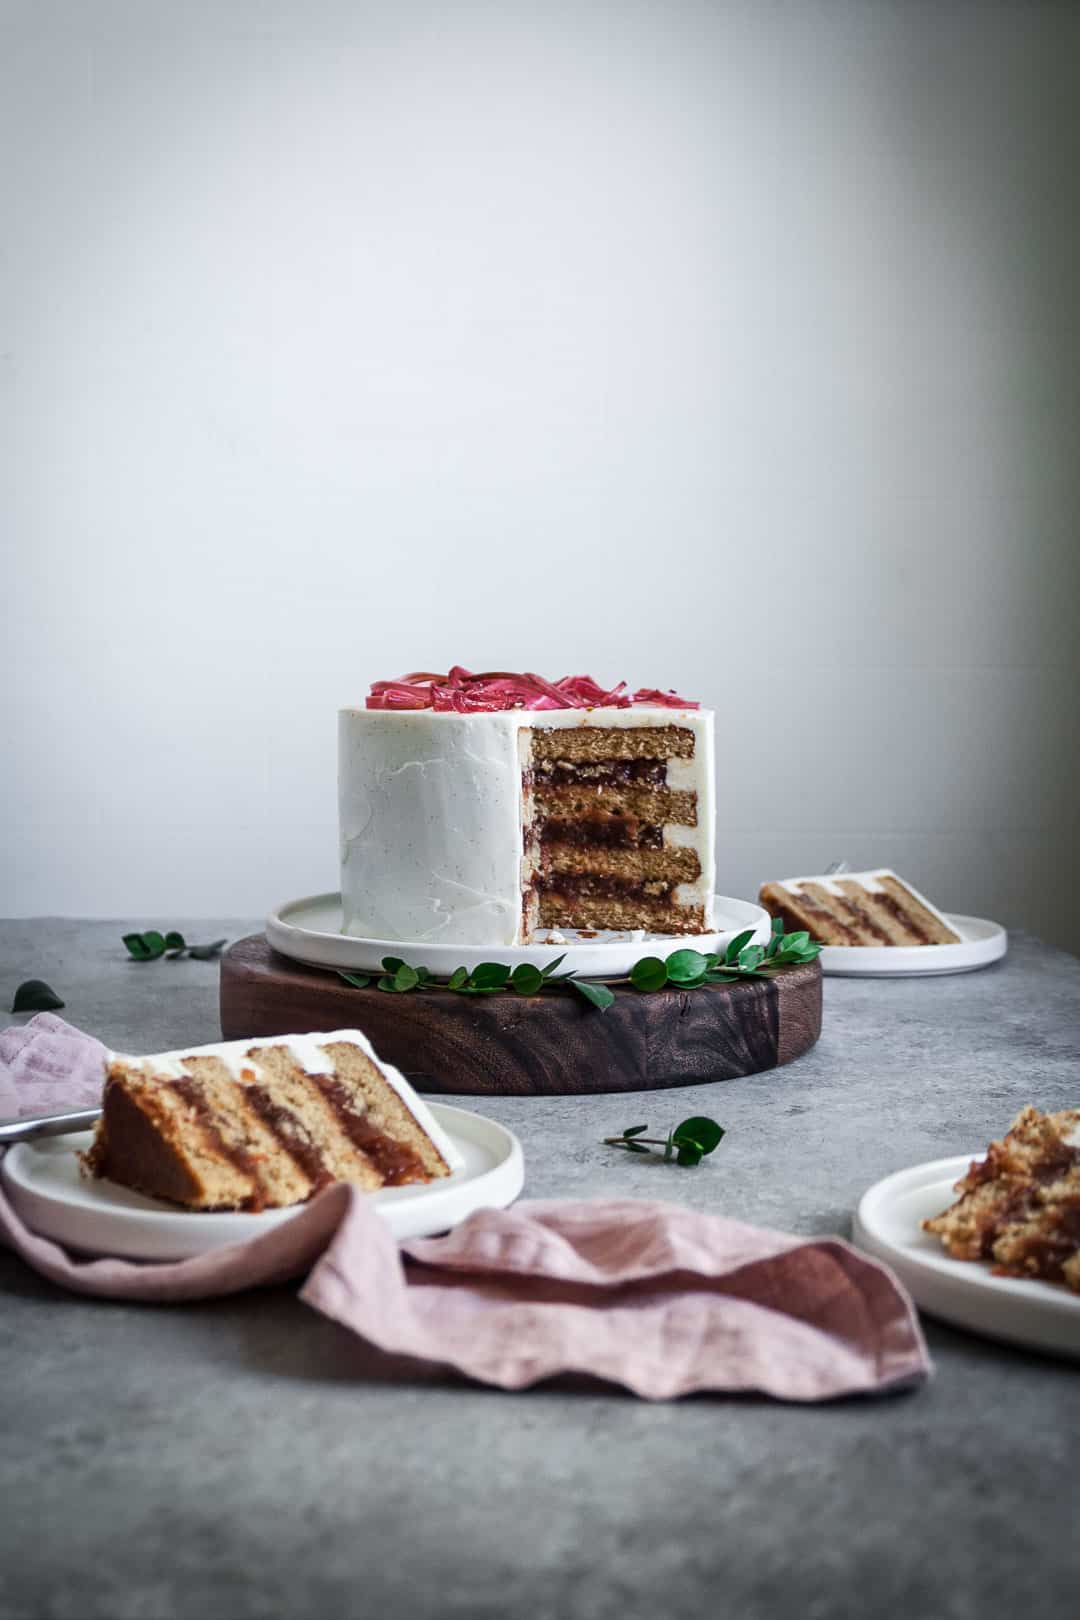 Three slices of brown sugar cake with rhubarb compote and creme fraiche buttercream on plates around the main cake